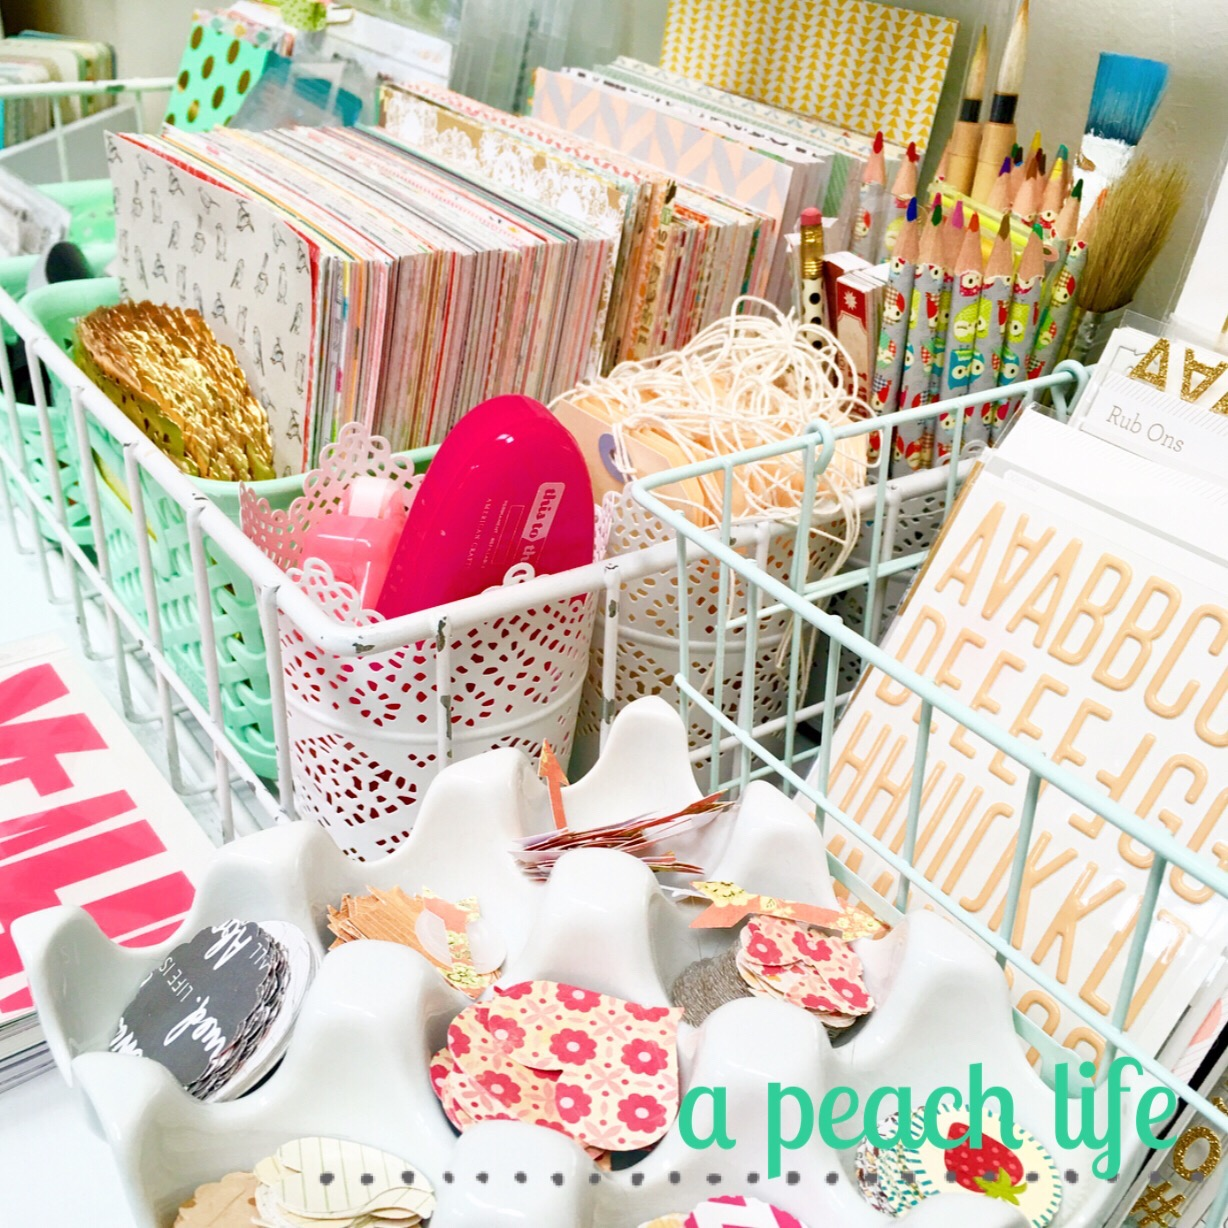 scrapbooking-paper-thickers-tape-runners-gold-a-peach-life.jpg